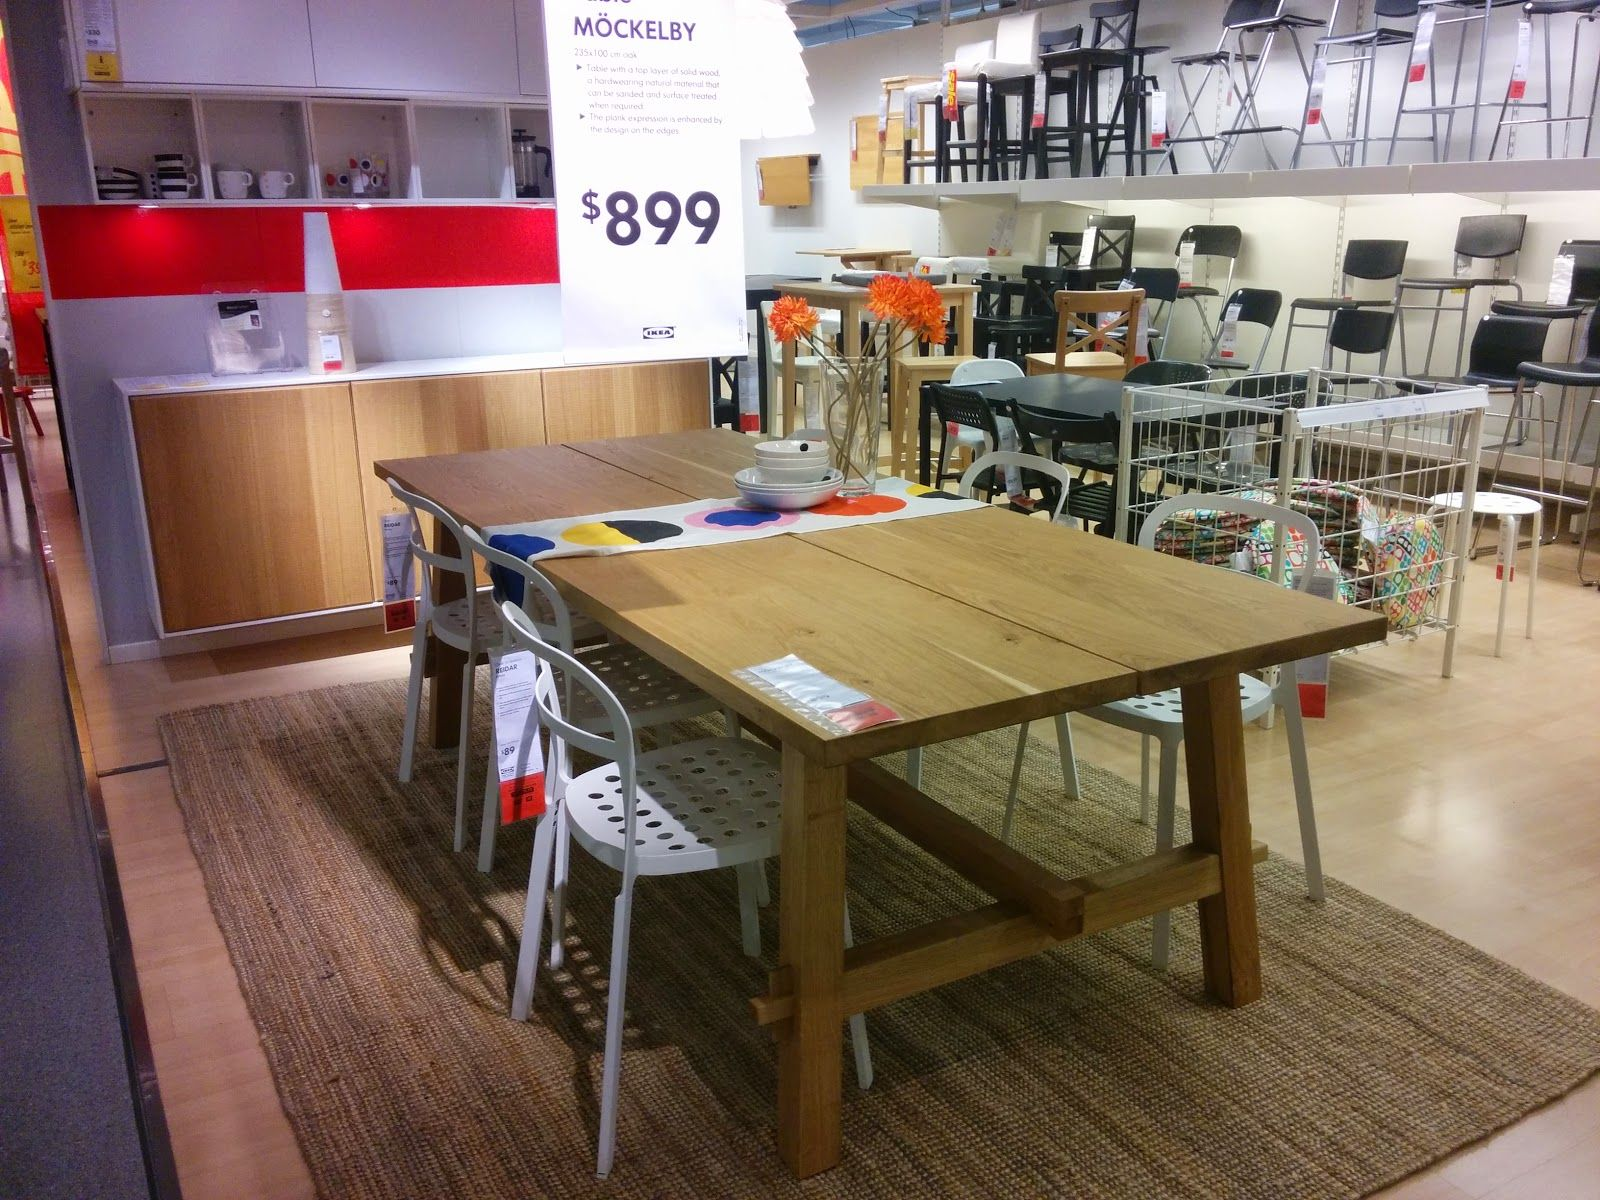 Teak Outdoor Küche Mockelby Table - Google Search | Table, Dining Table, Ikea